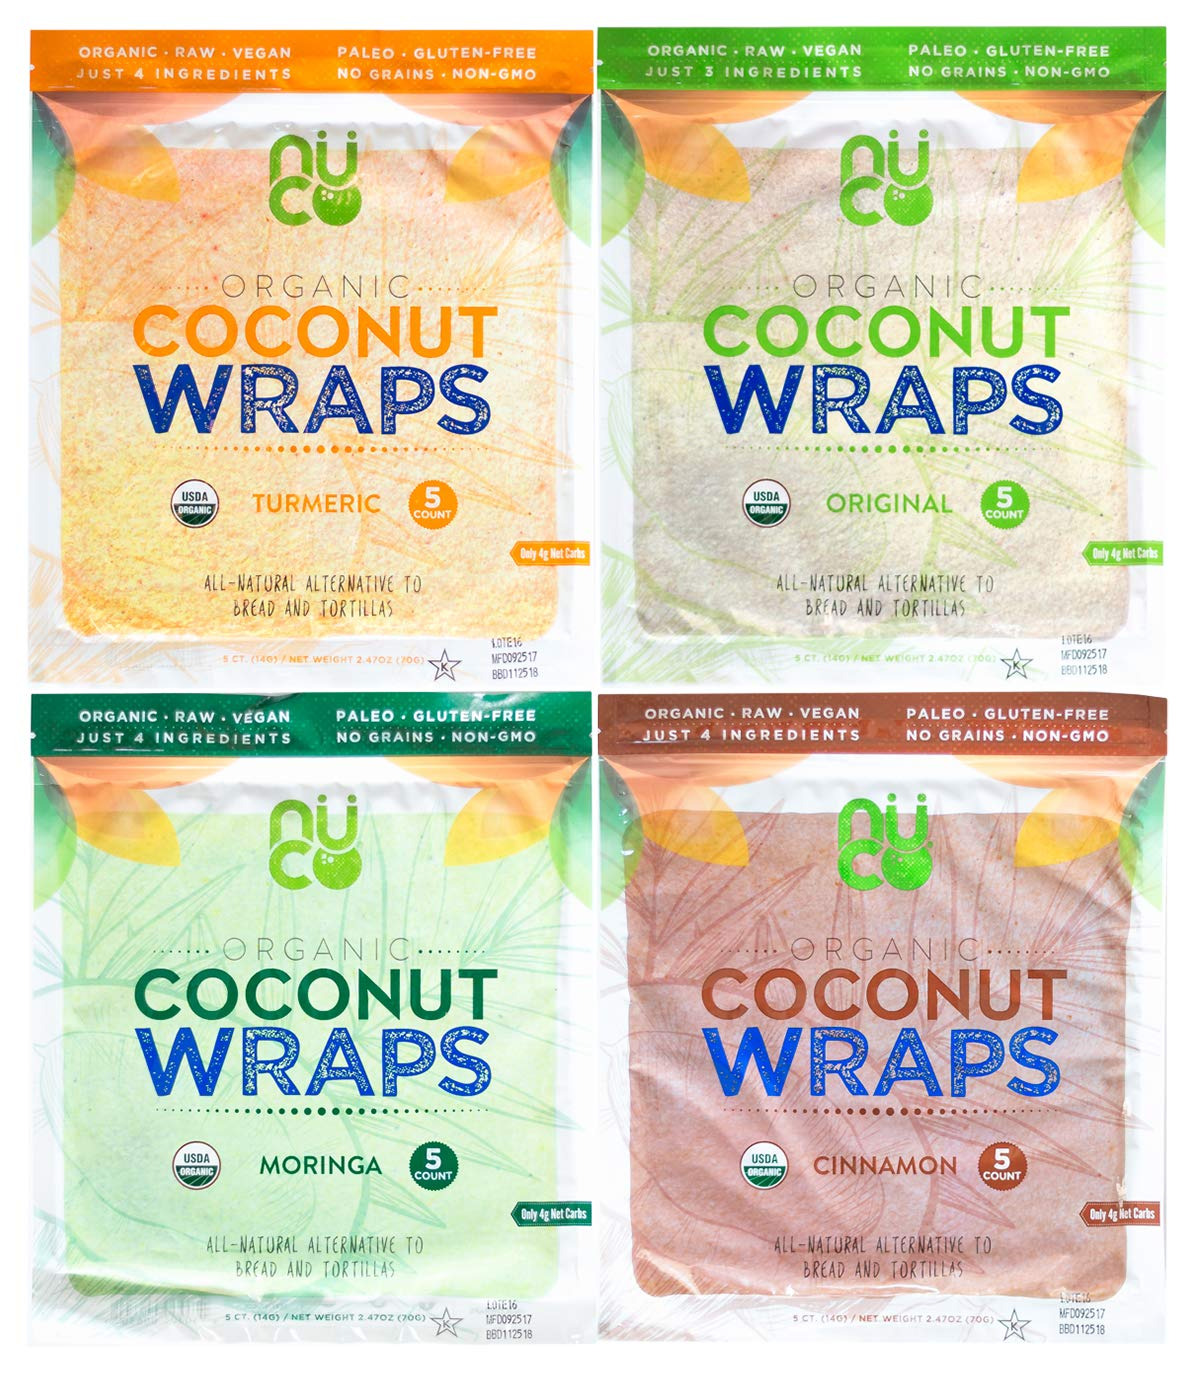 NUCO Organic Coconut Wraps Variety Pack: Original, Turmeric, Moringa, and Cinnamon (20 wraps total) by Nucoconut